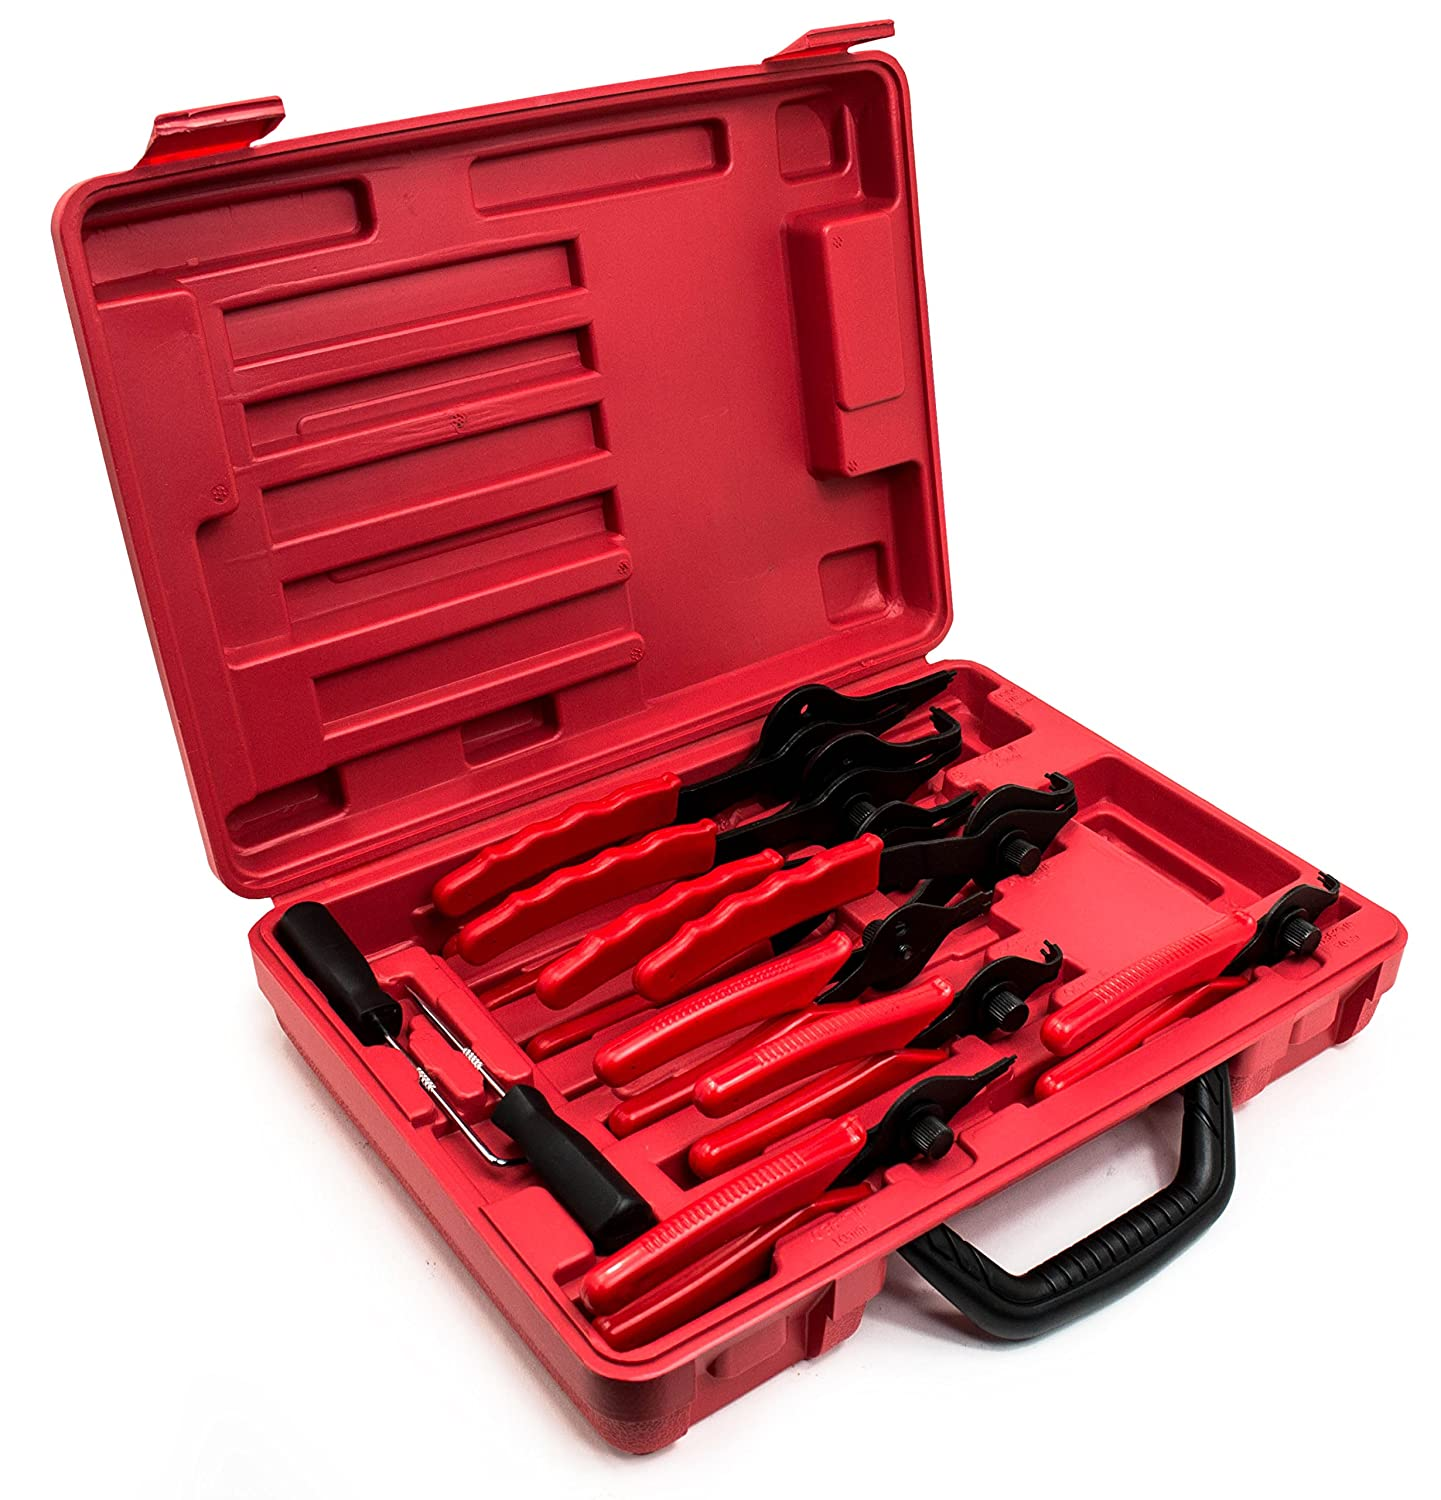 Bastex 11 piece Internal External Plier Set for Retaining Snap Ring and Circlip Removal Tools for Automobiles Lawnmowers and Farm Equipment Maintenance Easy Push nut E Spiral an Split ring Removal.